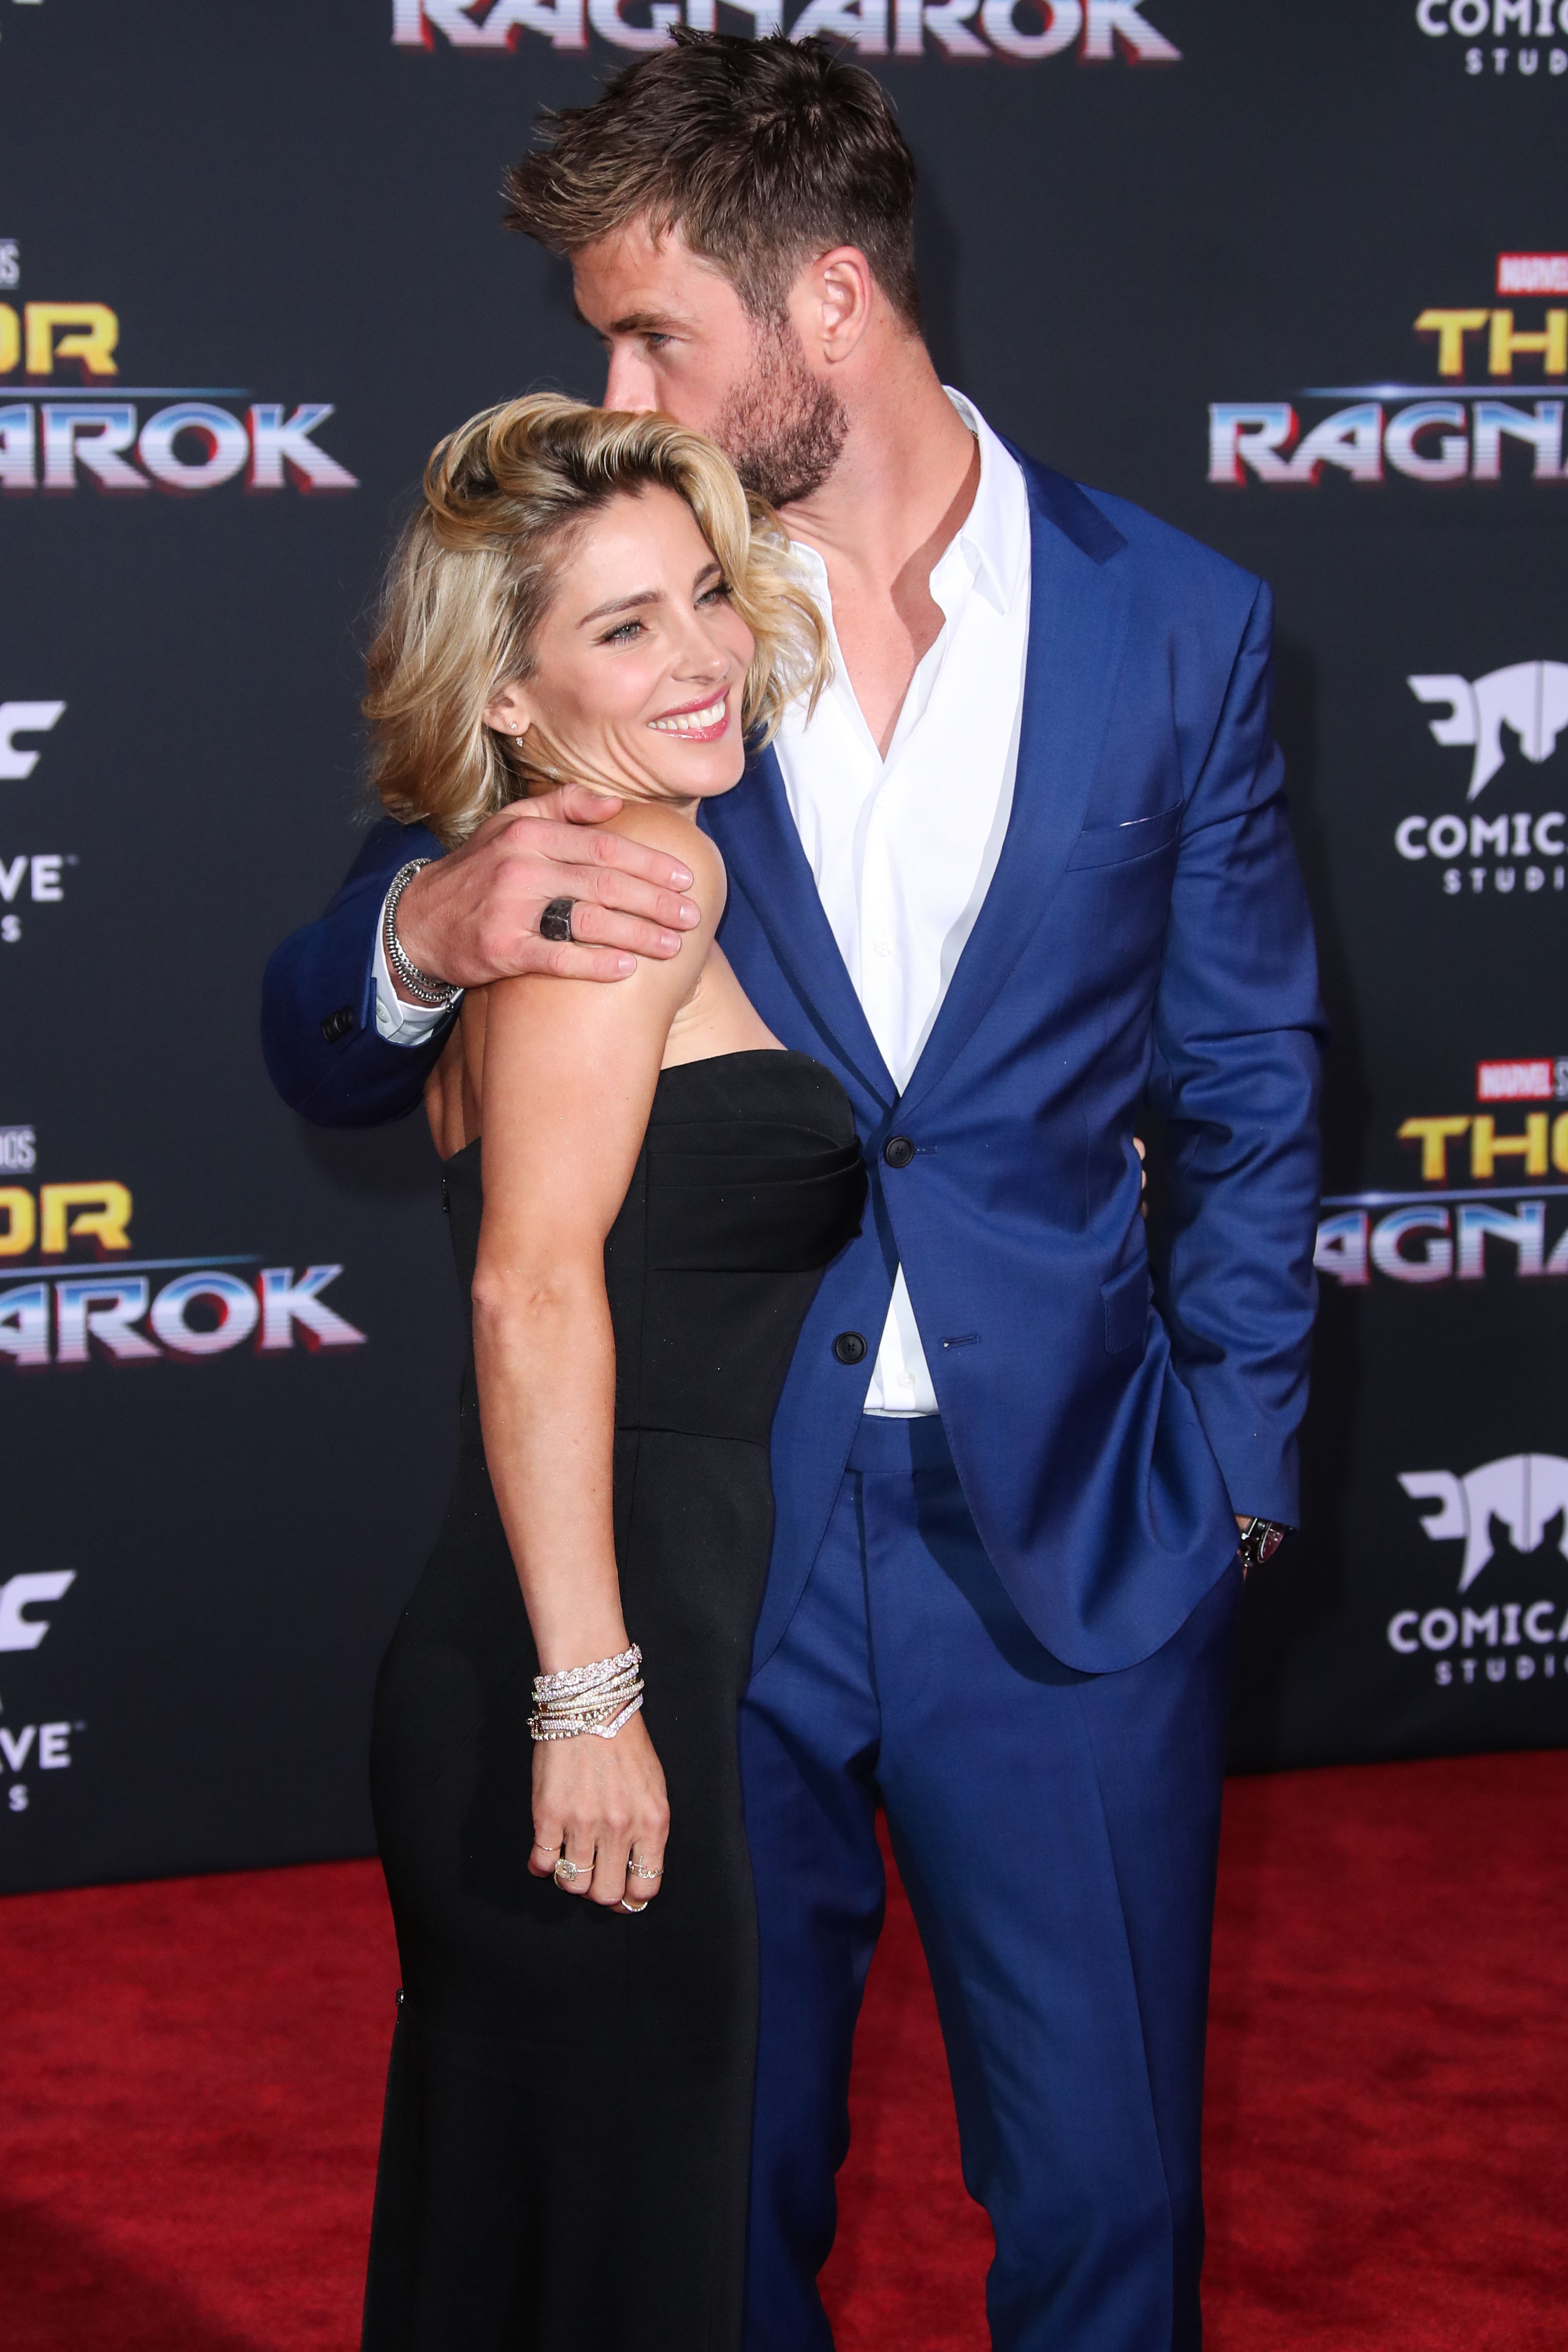 HOLLYWOOD, LOS ANGELES, CA, USA - OCTOBER 10: Actress Elsa Pataky and husband Chris Hemsworth arrive at the Los Angeles Premiere Of Disney And Marvel's 'Thor: Ragnarok' held at the El Capitan Theatre on October 10, 2017 in Hollywood, Los Angeles, California, United States. (Photo by Xavier Collin/Image Press Agency/Splash News) <P> Pictured: Elsa Pataky, Chris Hemsworth <B>Ref: SPL1599705  101017  </B><BR/> Picture by: Xavier Collin/IPA/Splash News<BR/> </P><P> <B>Splash News and Pictures</B><BR/> Los Angeles:310-821-2666<BR/> New York:212-619-2666<BR/> London:870-934-2666<BR/> <span id=